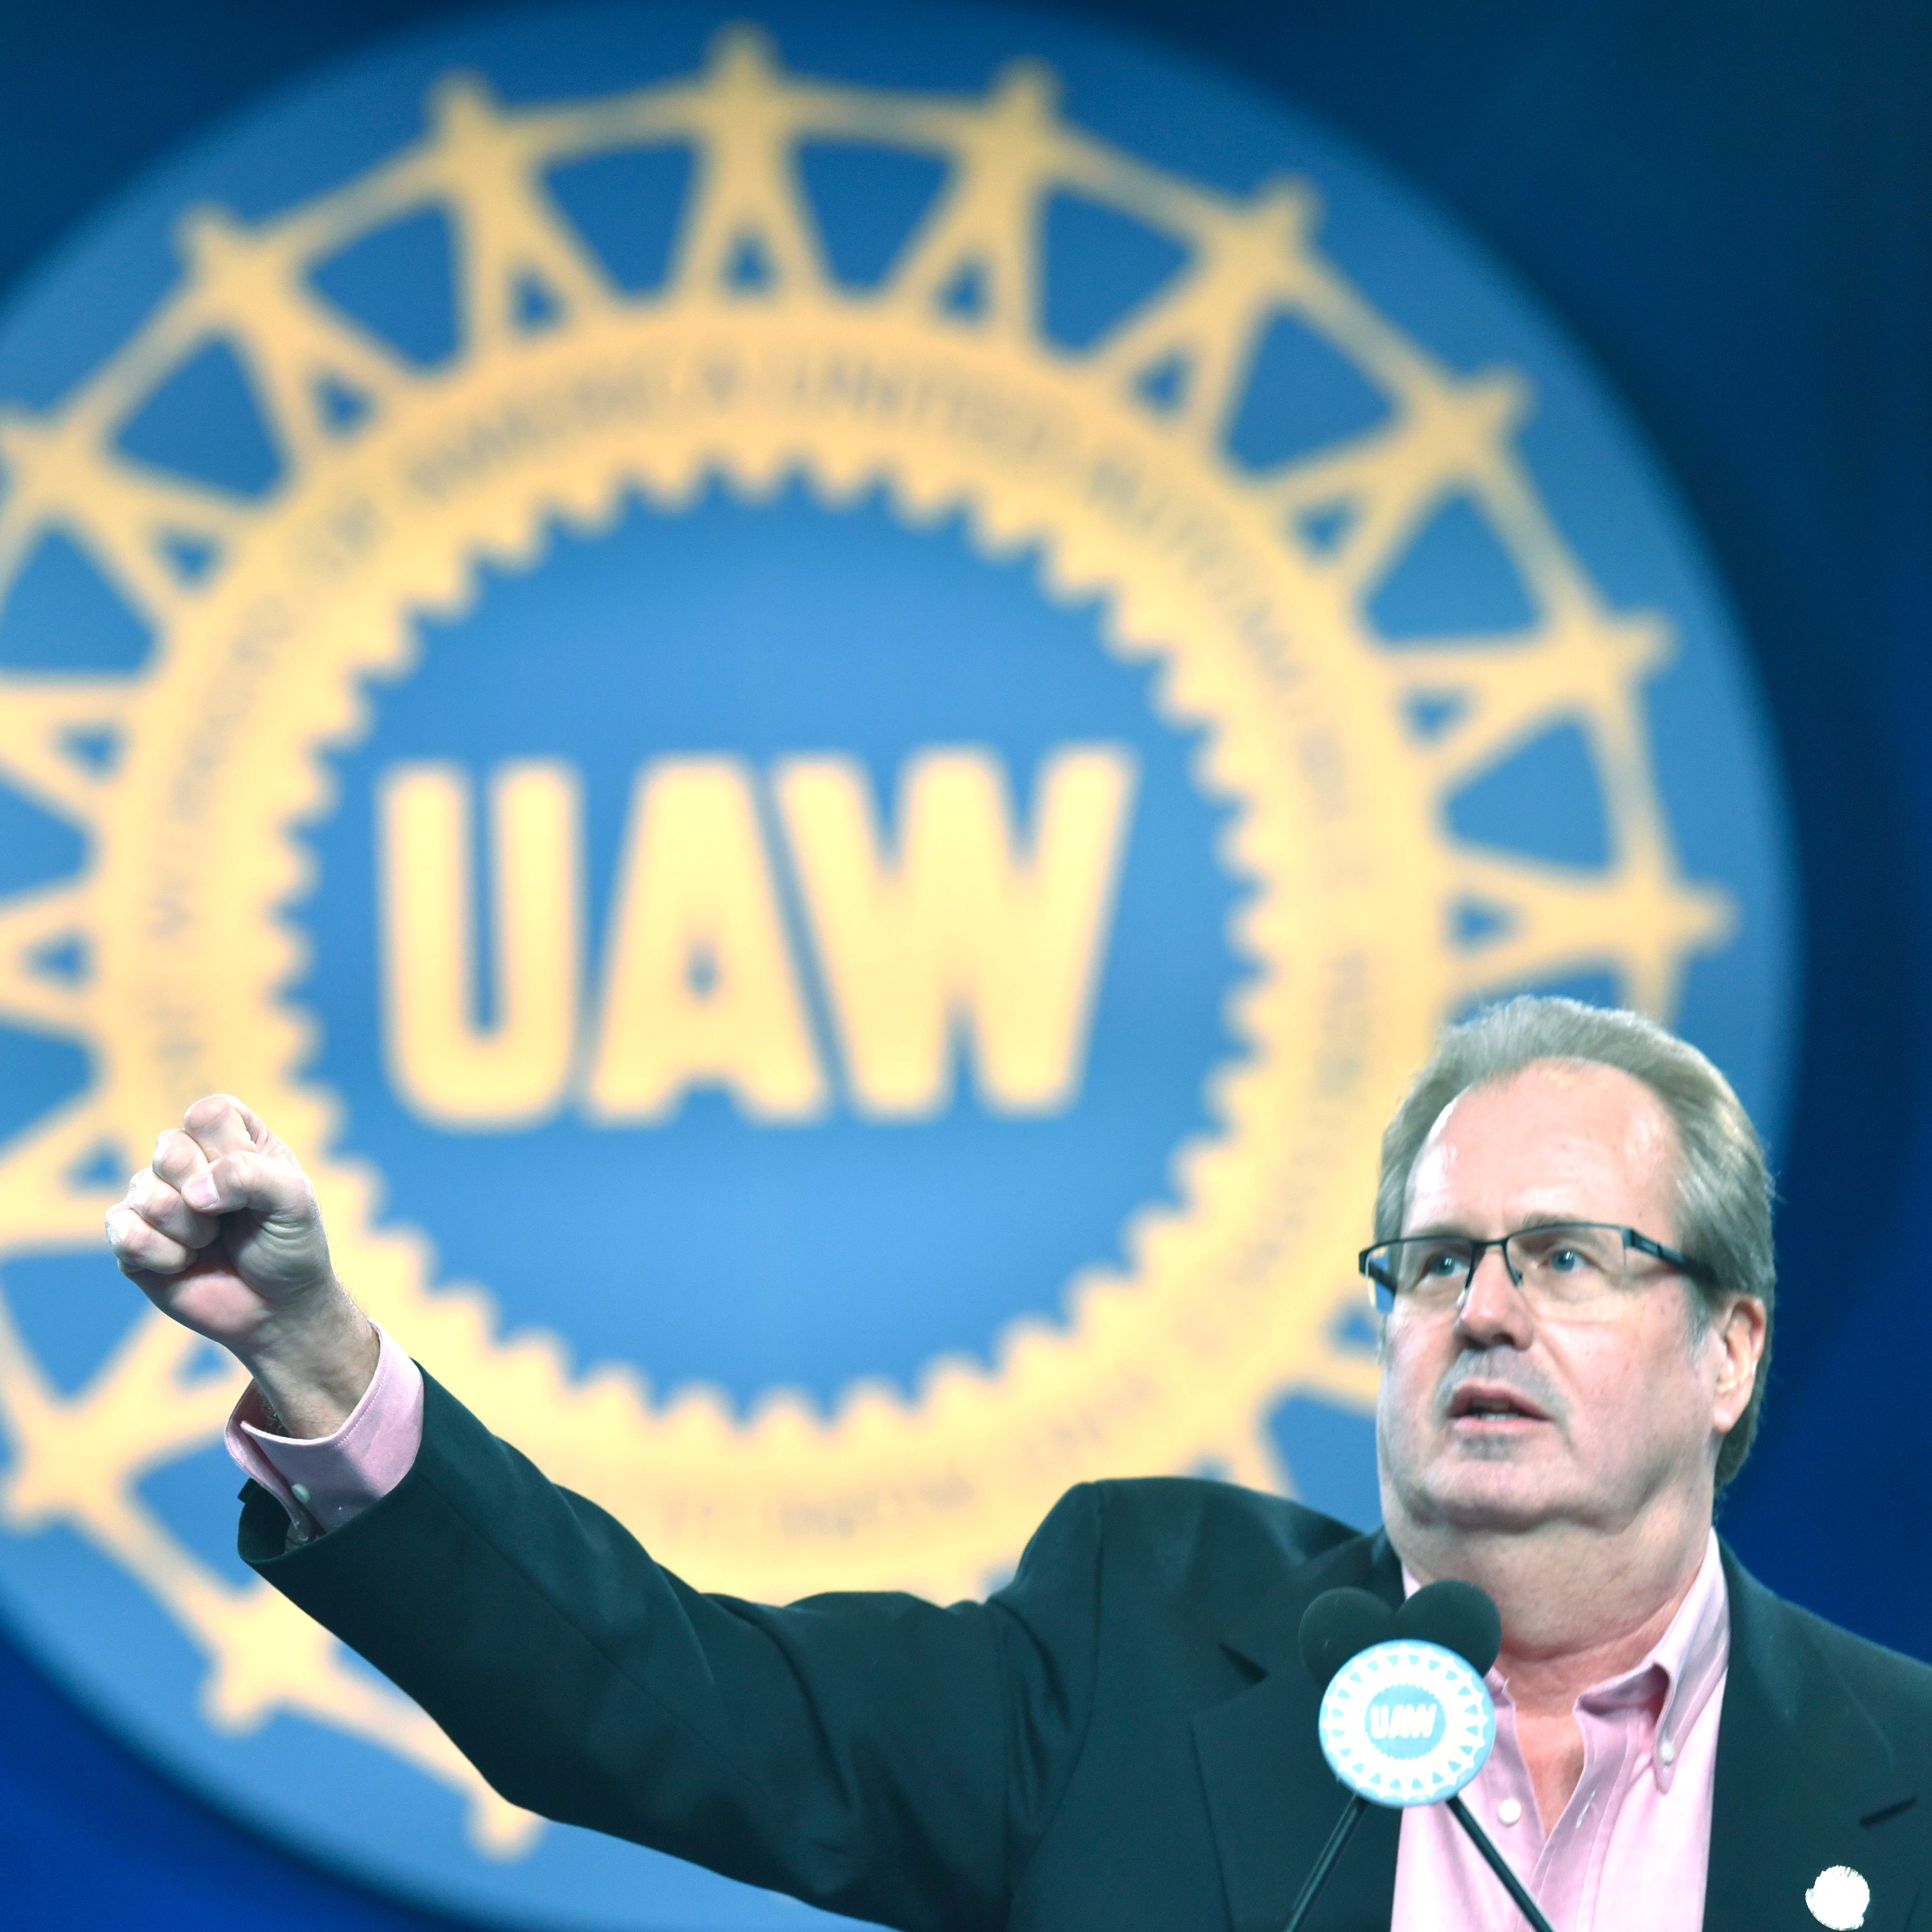 UAW gears up for tough fight with Detroit Three